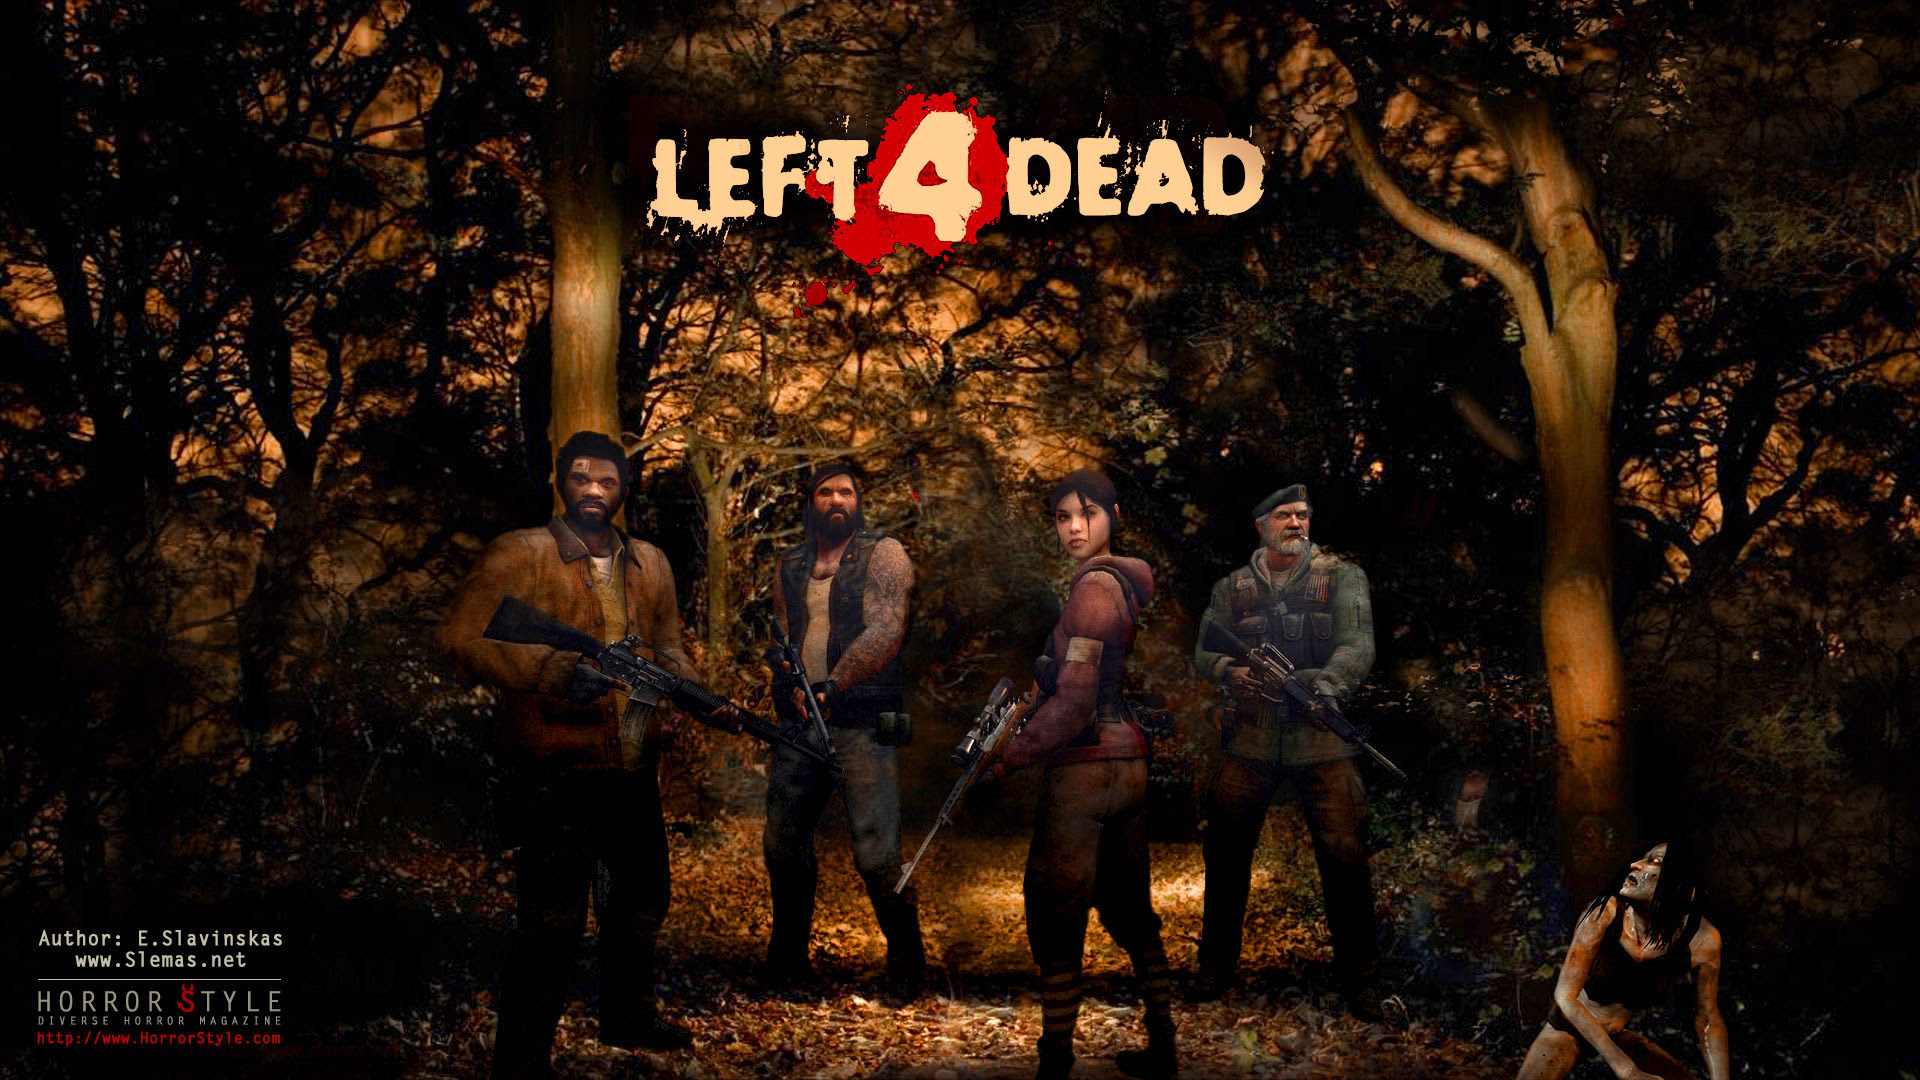 Left 4 Dead 2 Wallpaper 1920x1080 78966